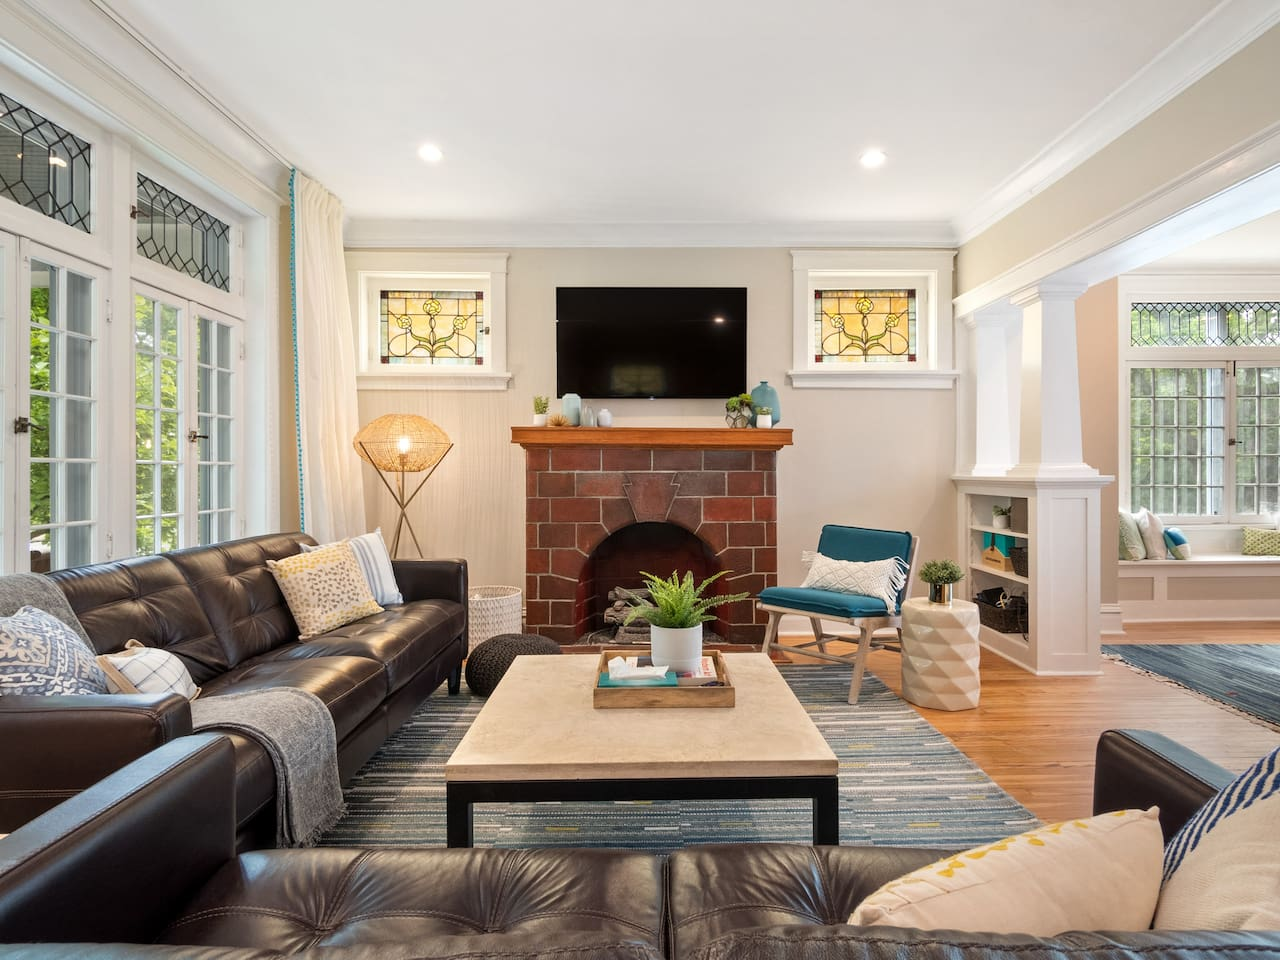 Our newly remodeled home is perfect for your family getaway! Cable tv included, toys, books and games for your enjoyment.